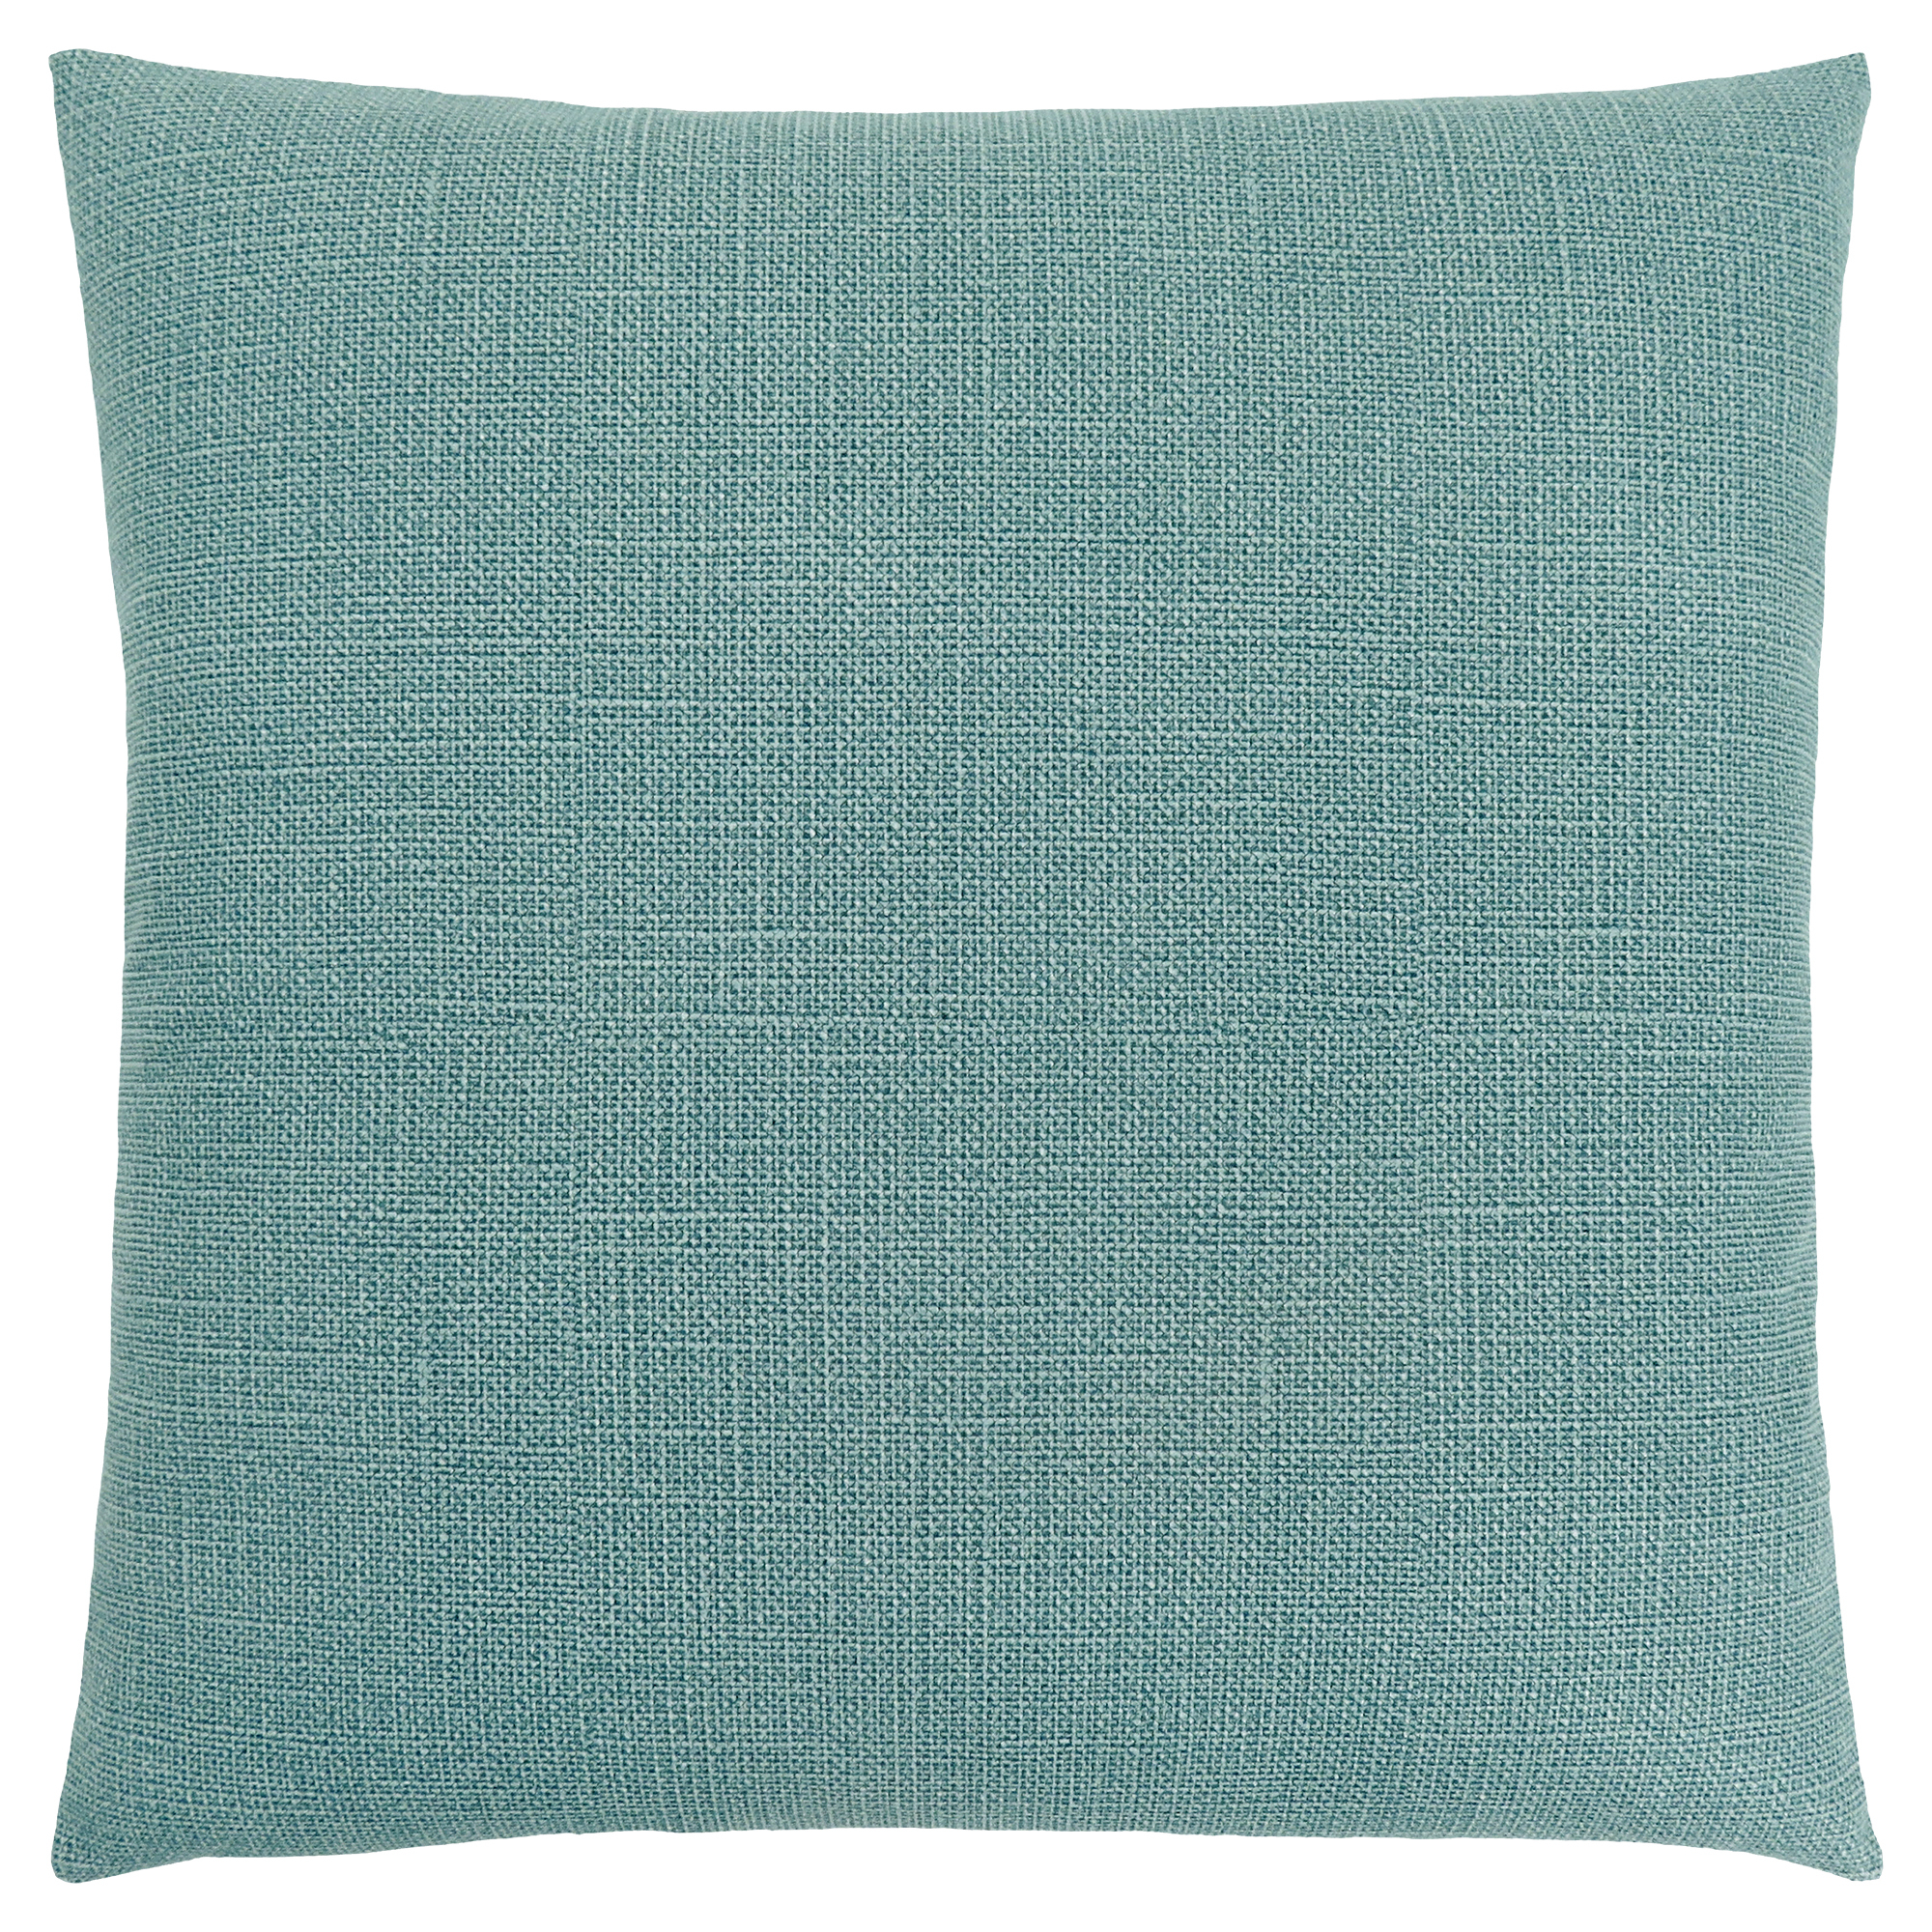 "PILLOW - 18""X 18"" / PATTERNED LIGHT GREEN / 1PC"